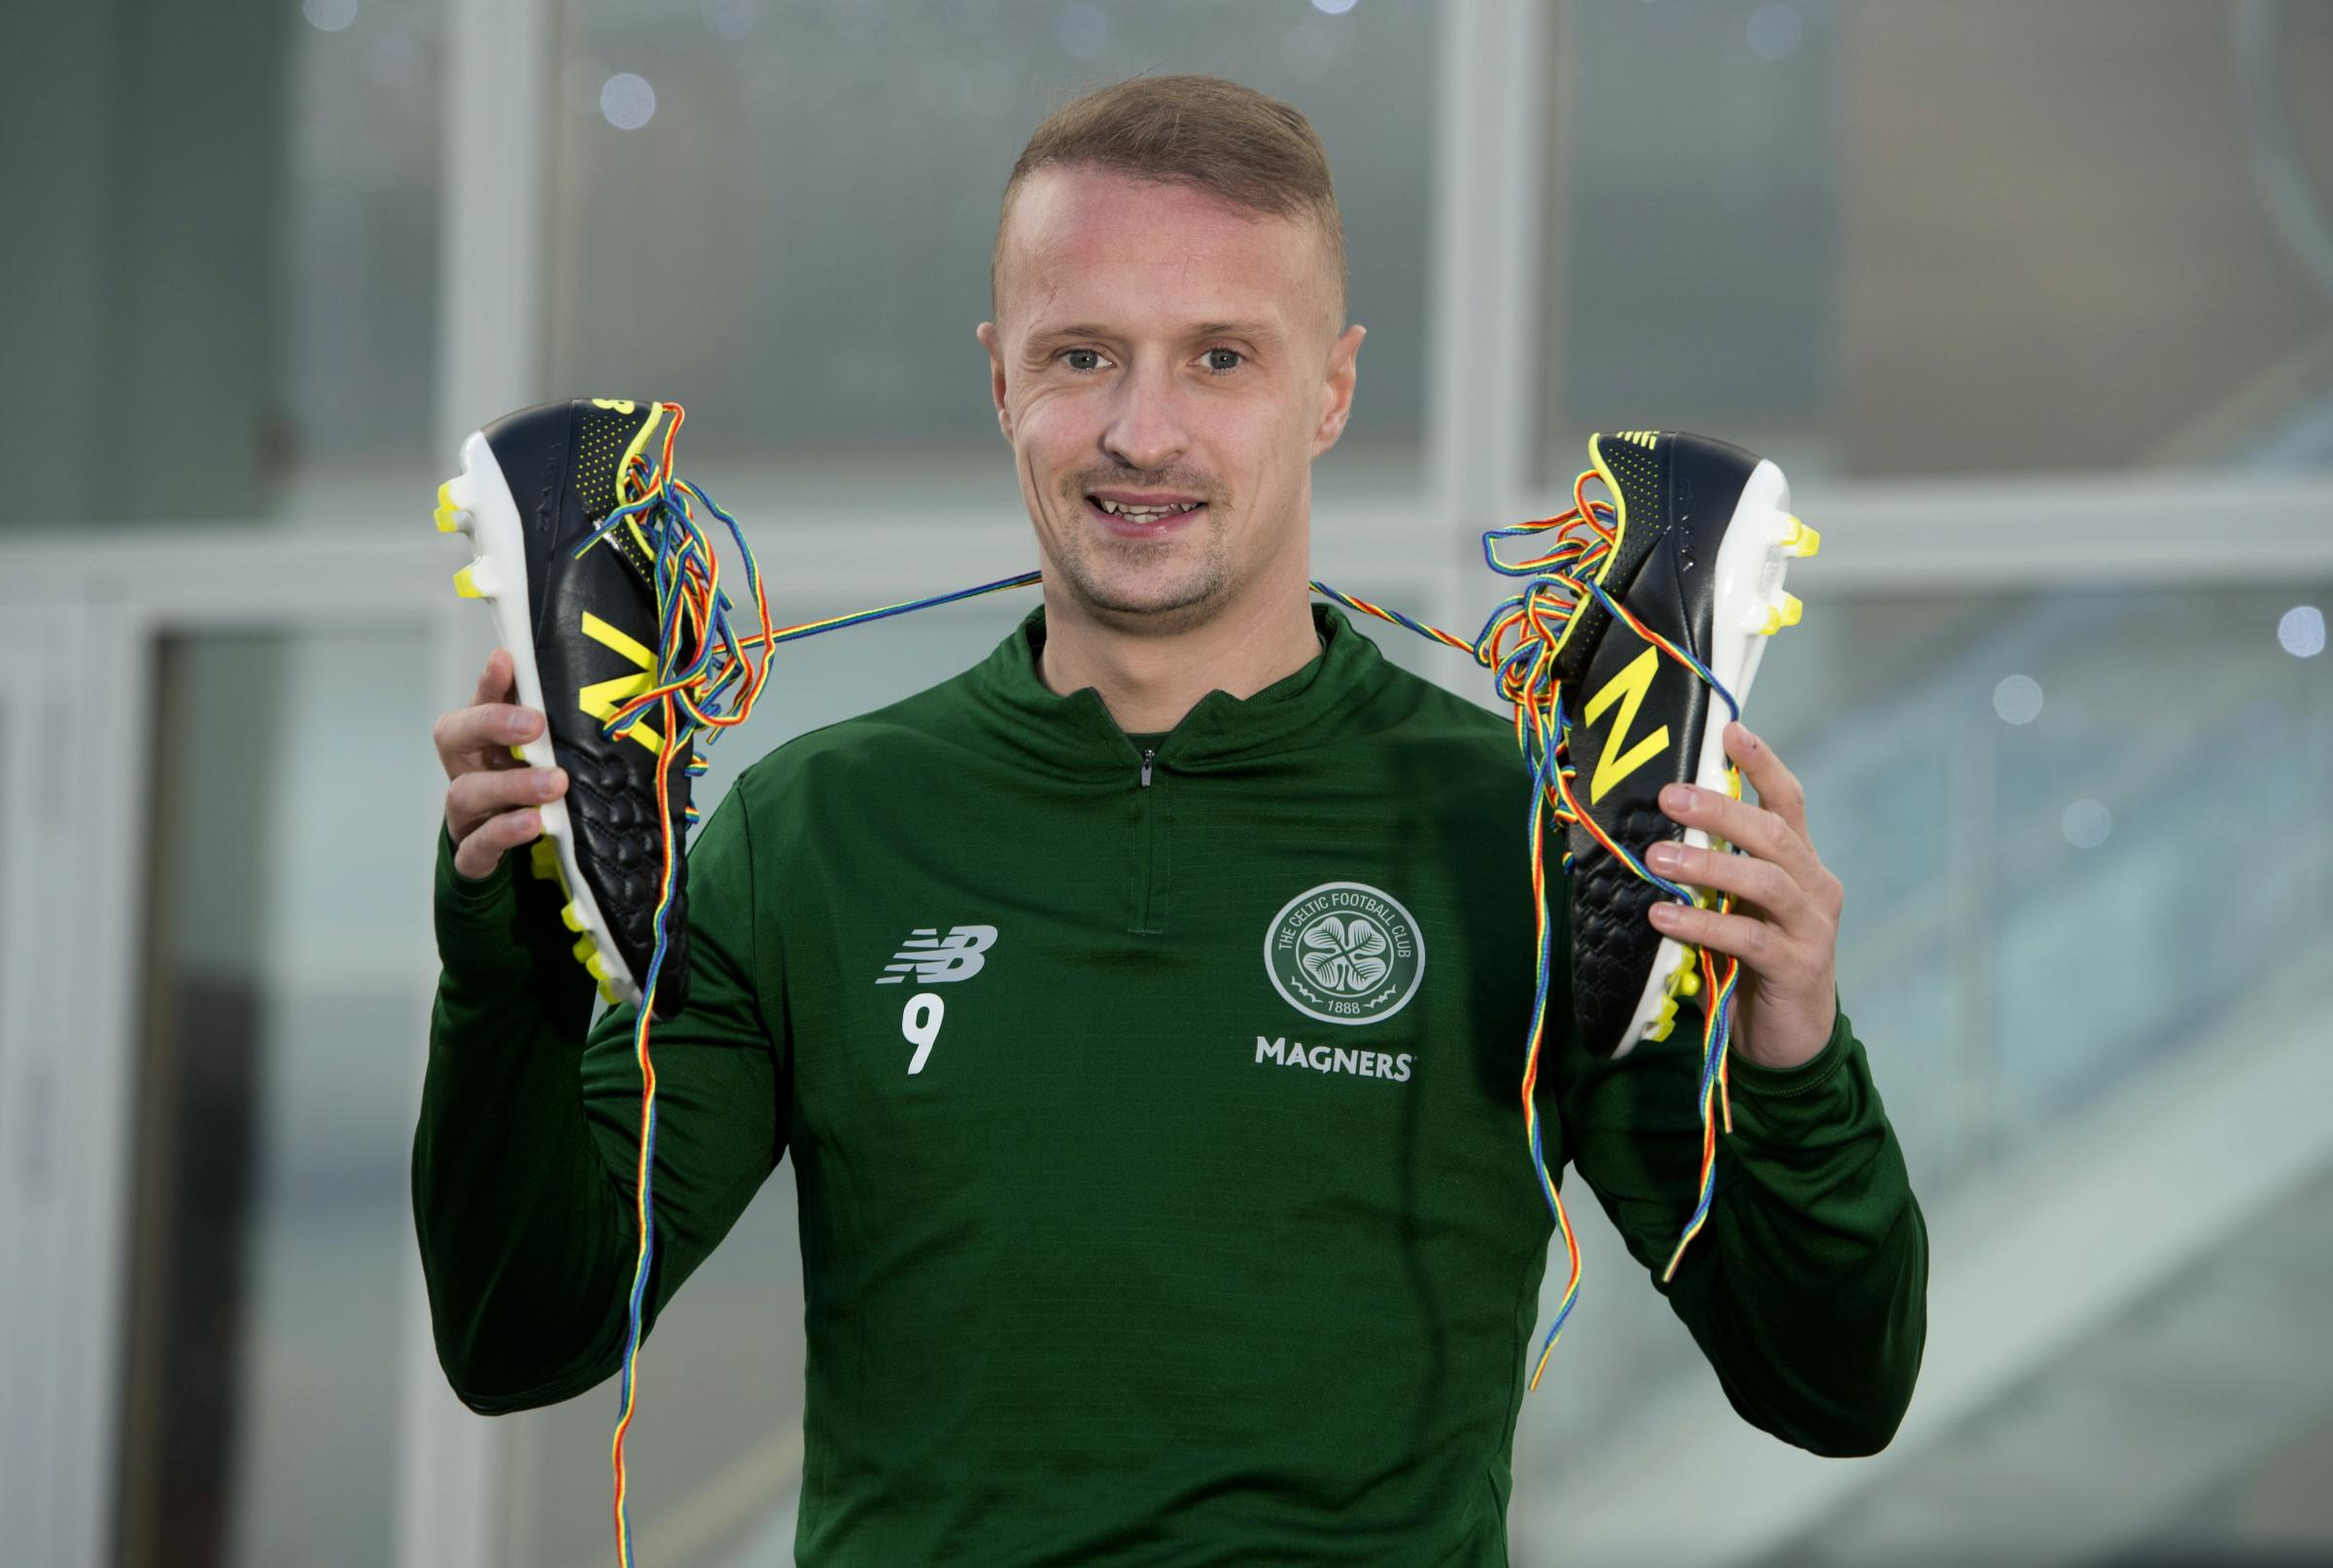 04/12/18.LENNOXTOWN.Celtic striker Leigh Griffiths shows his support for the rainbow laces campaign.